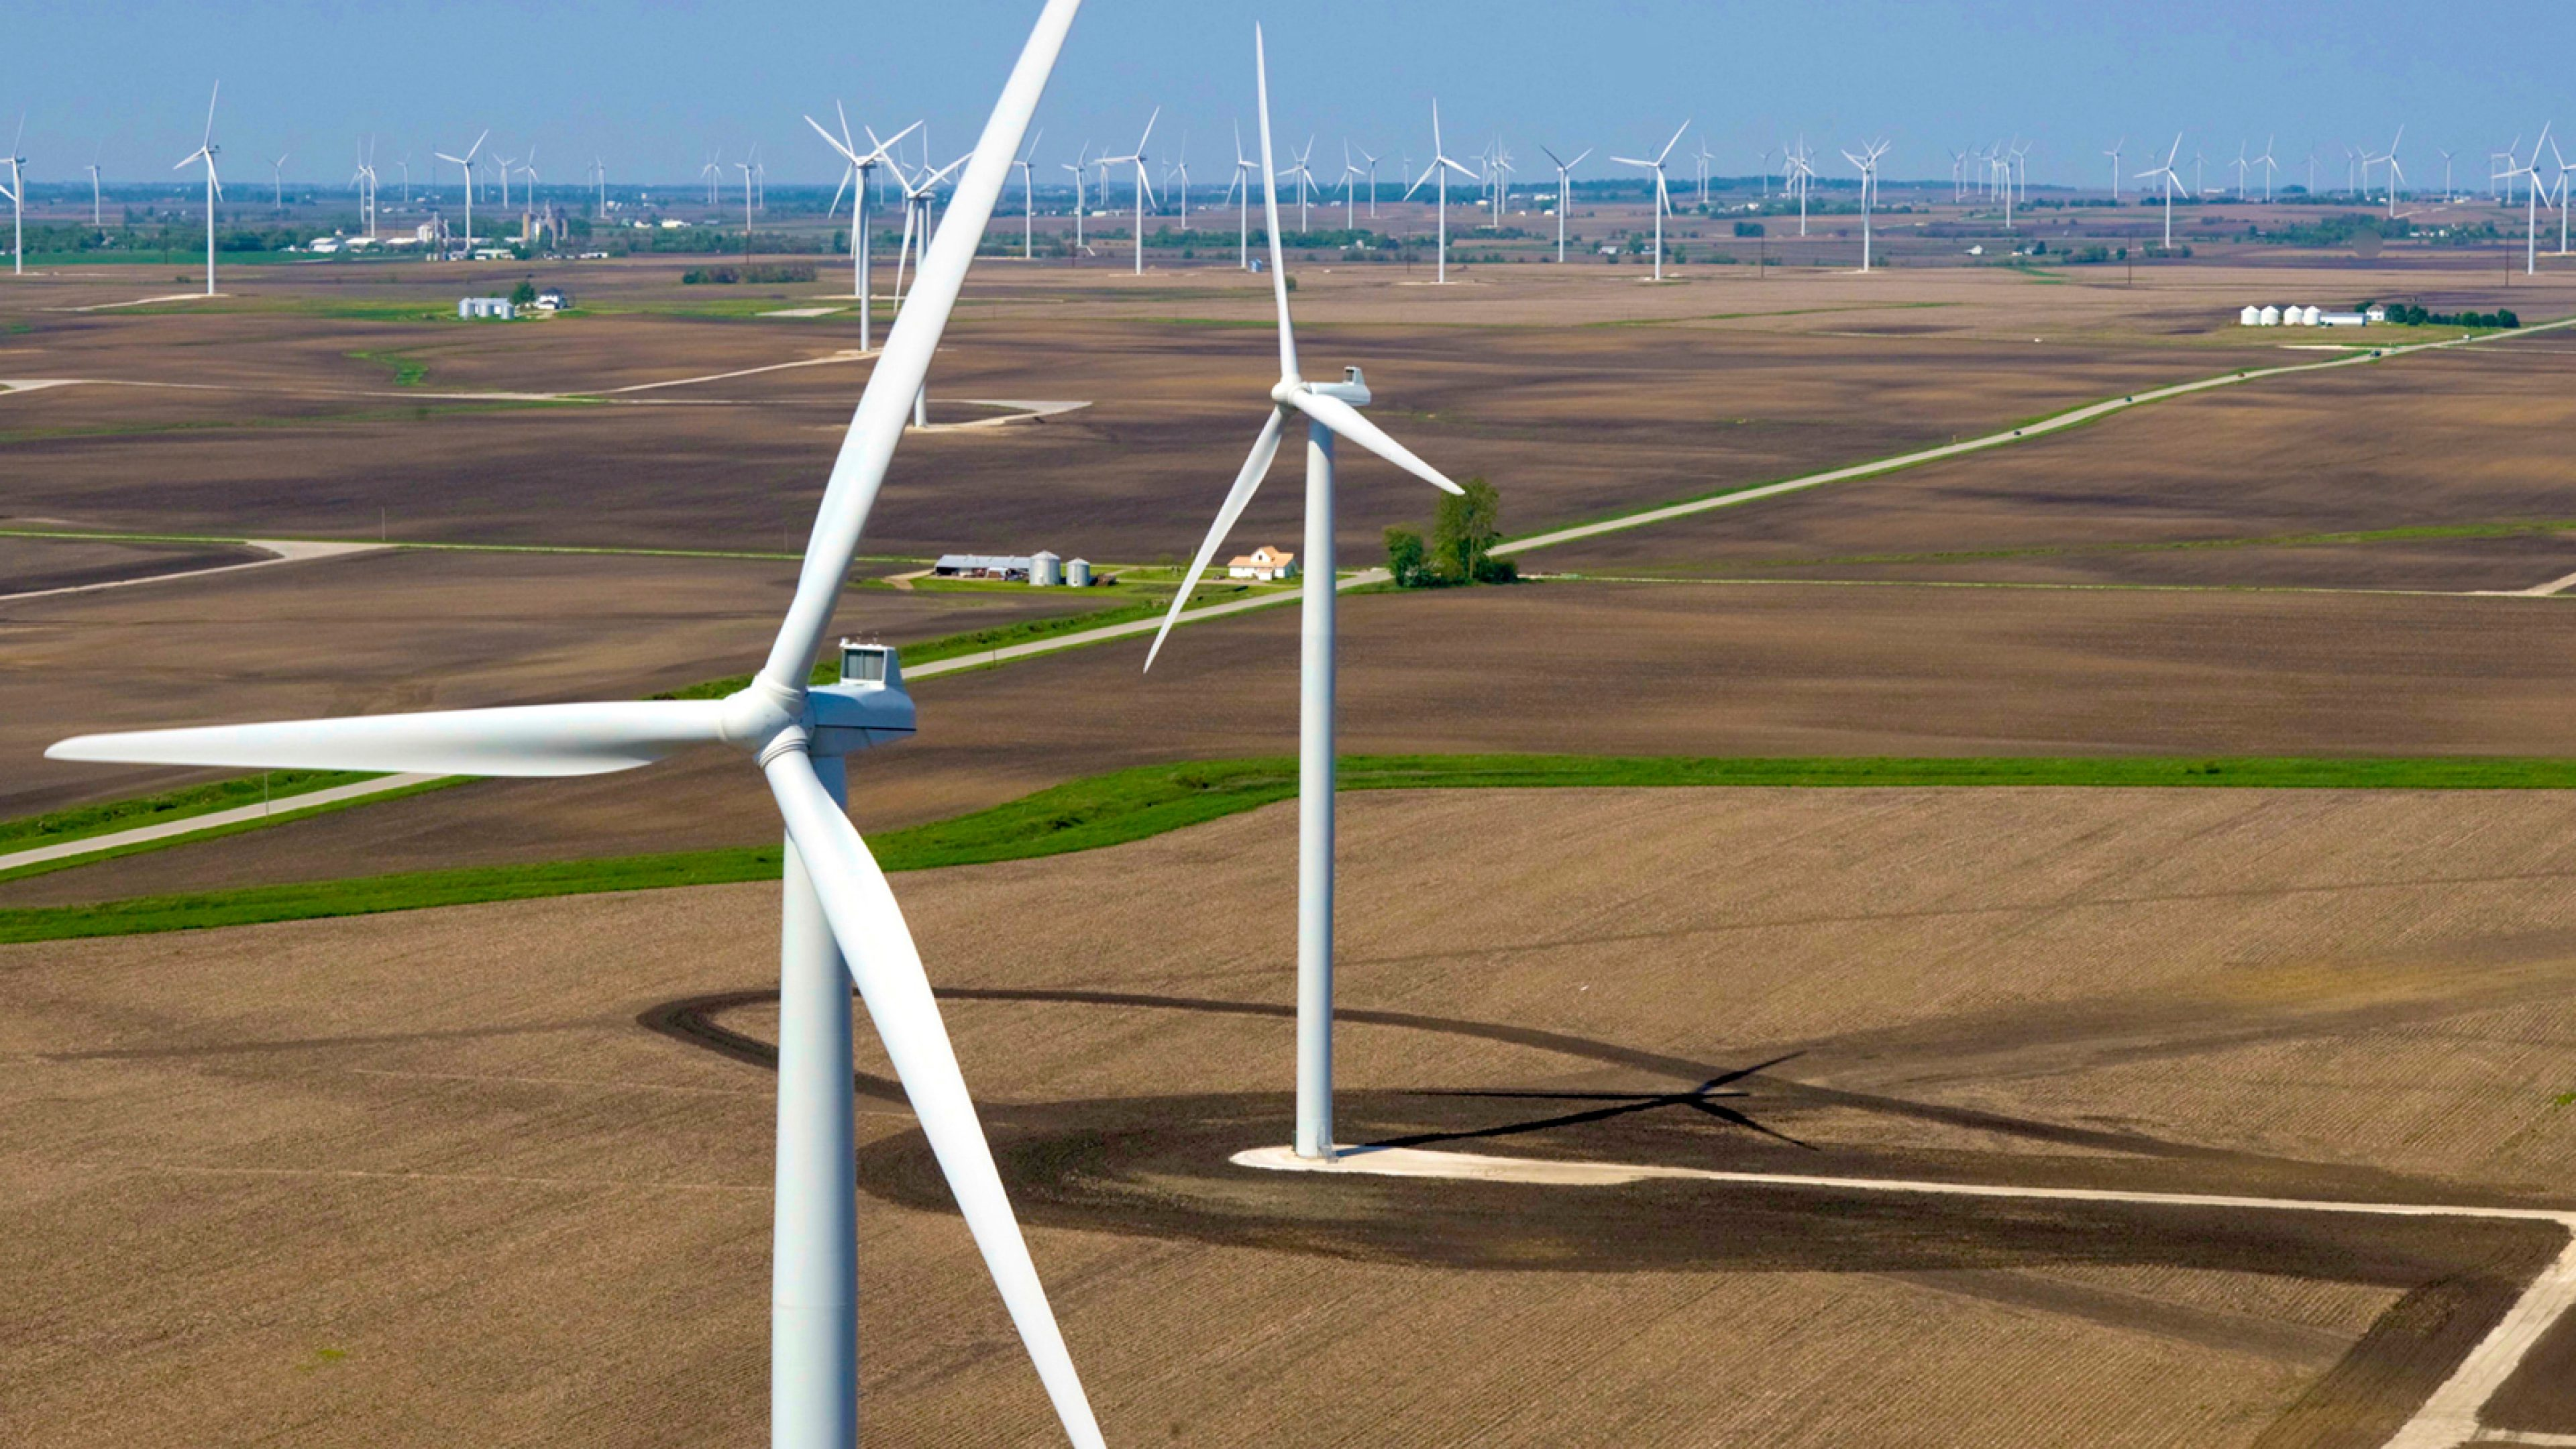 Panoramic view of wind turbines